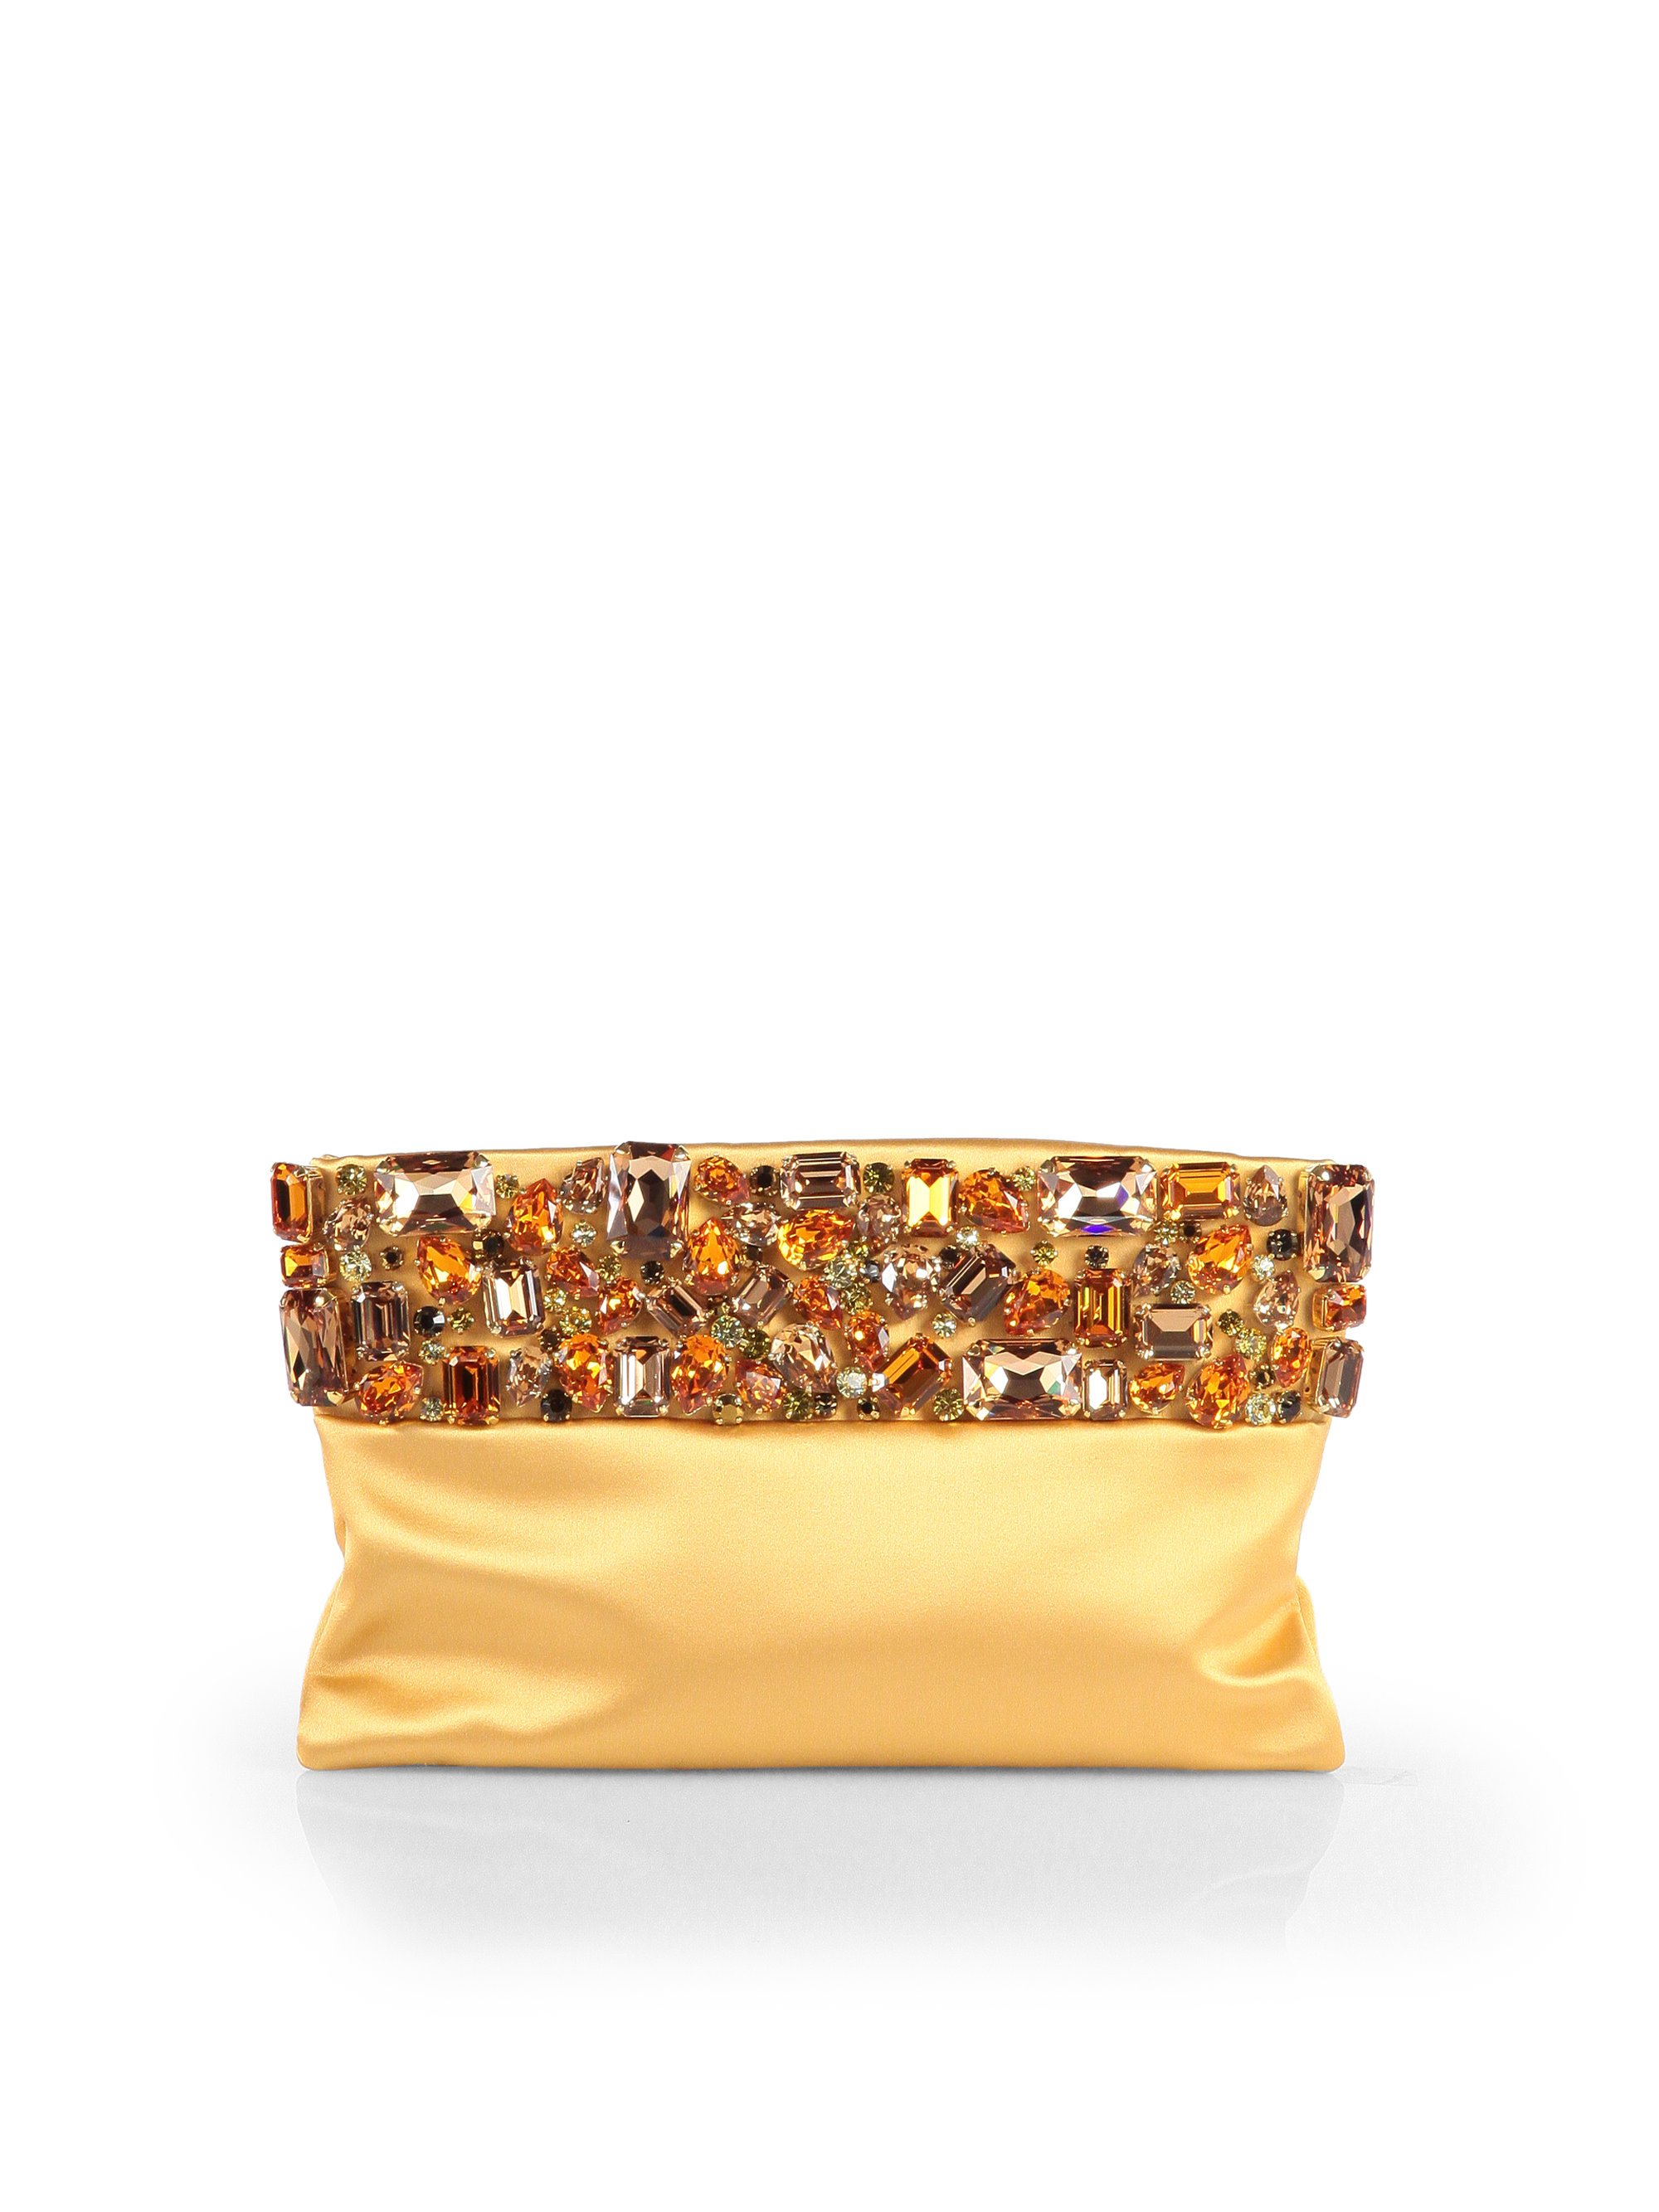 prada bag latest collection - Prada Raso Jeweled Satin Clutch in Gold (GINESTRA-GOLD) | Lyst